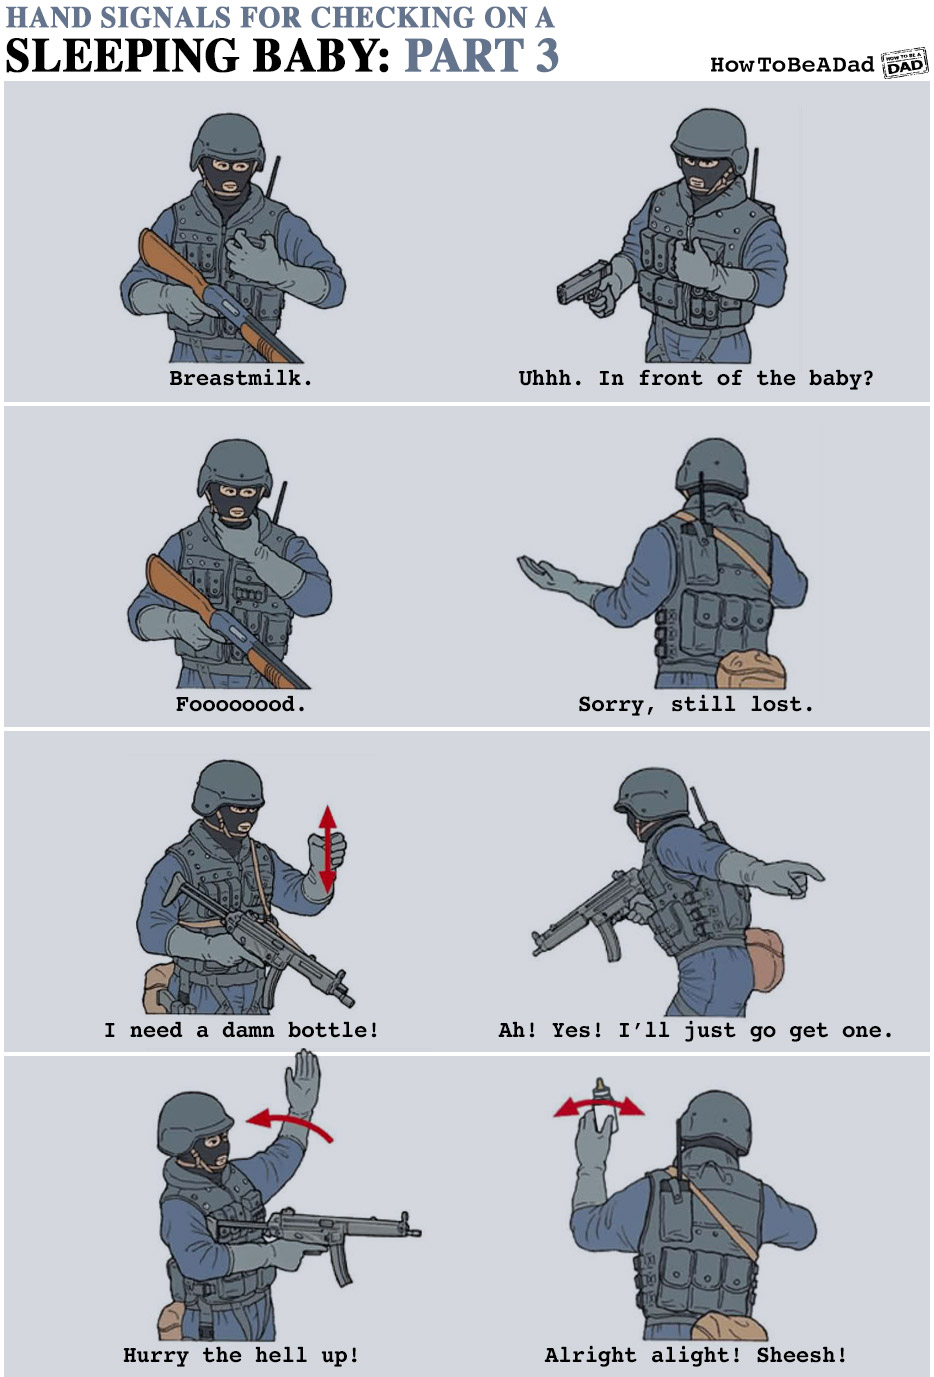 Military Hand Signals for Checking on a Sleeping Baby Funny Parenting Part 3